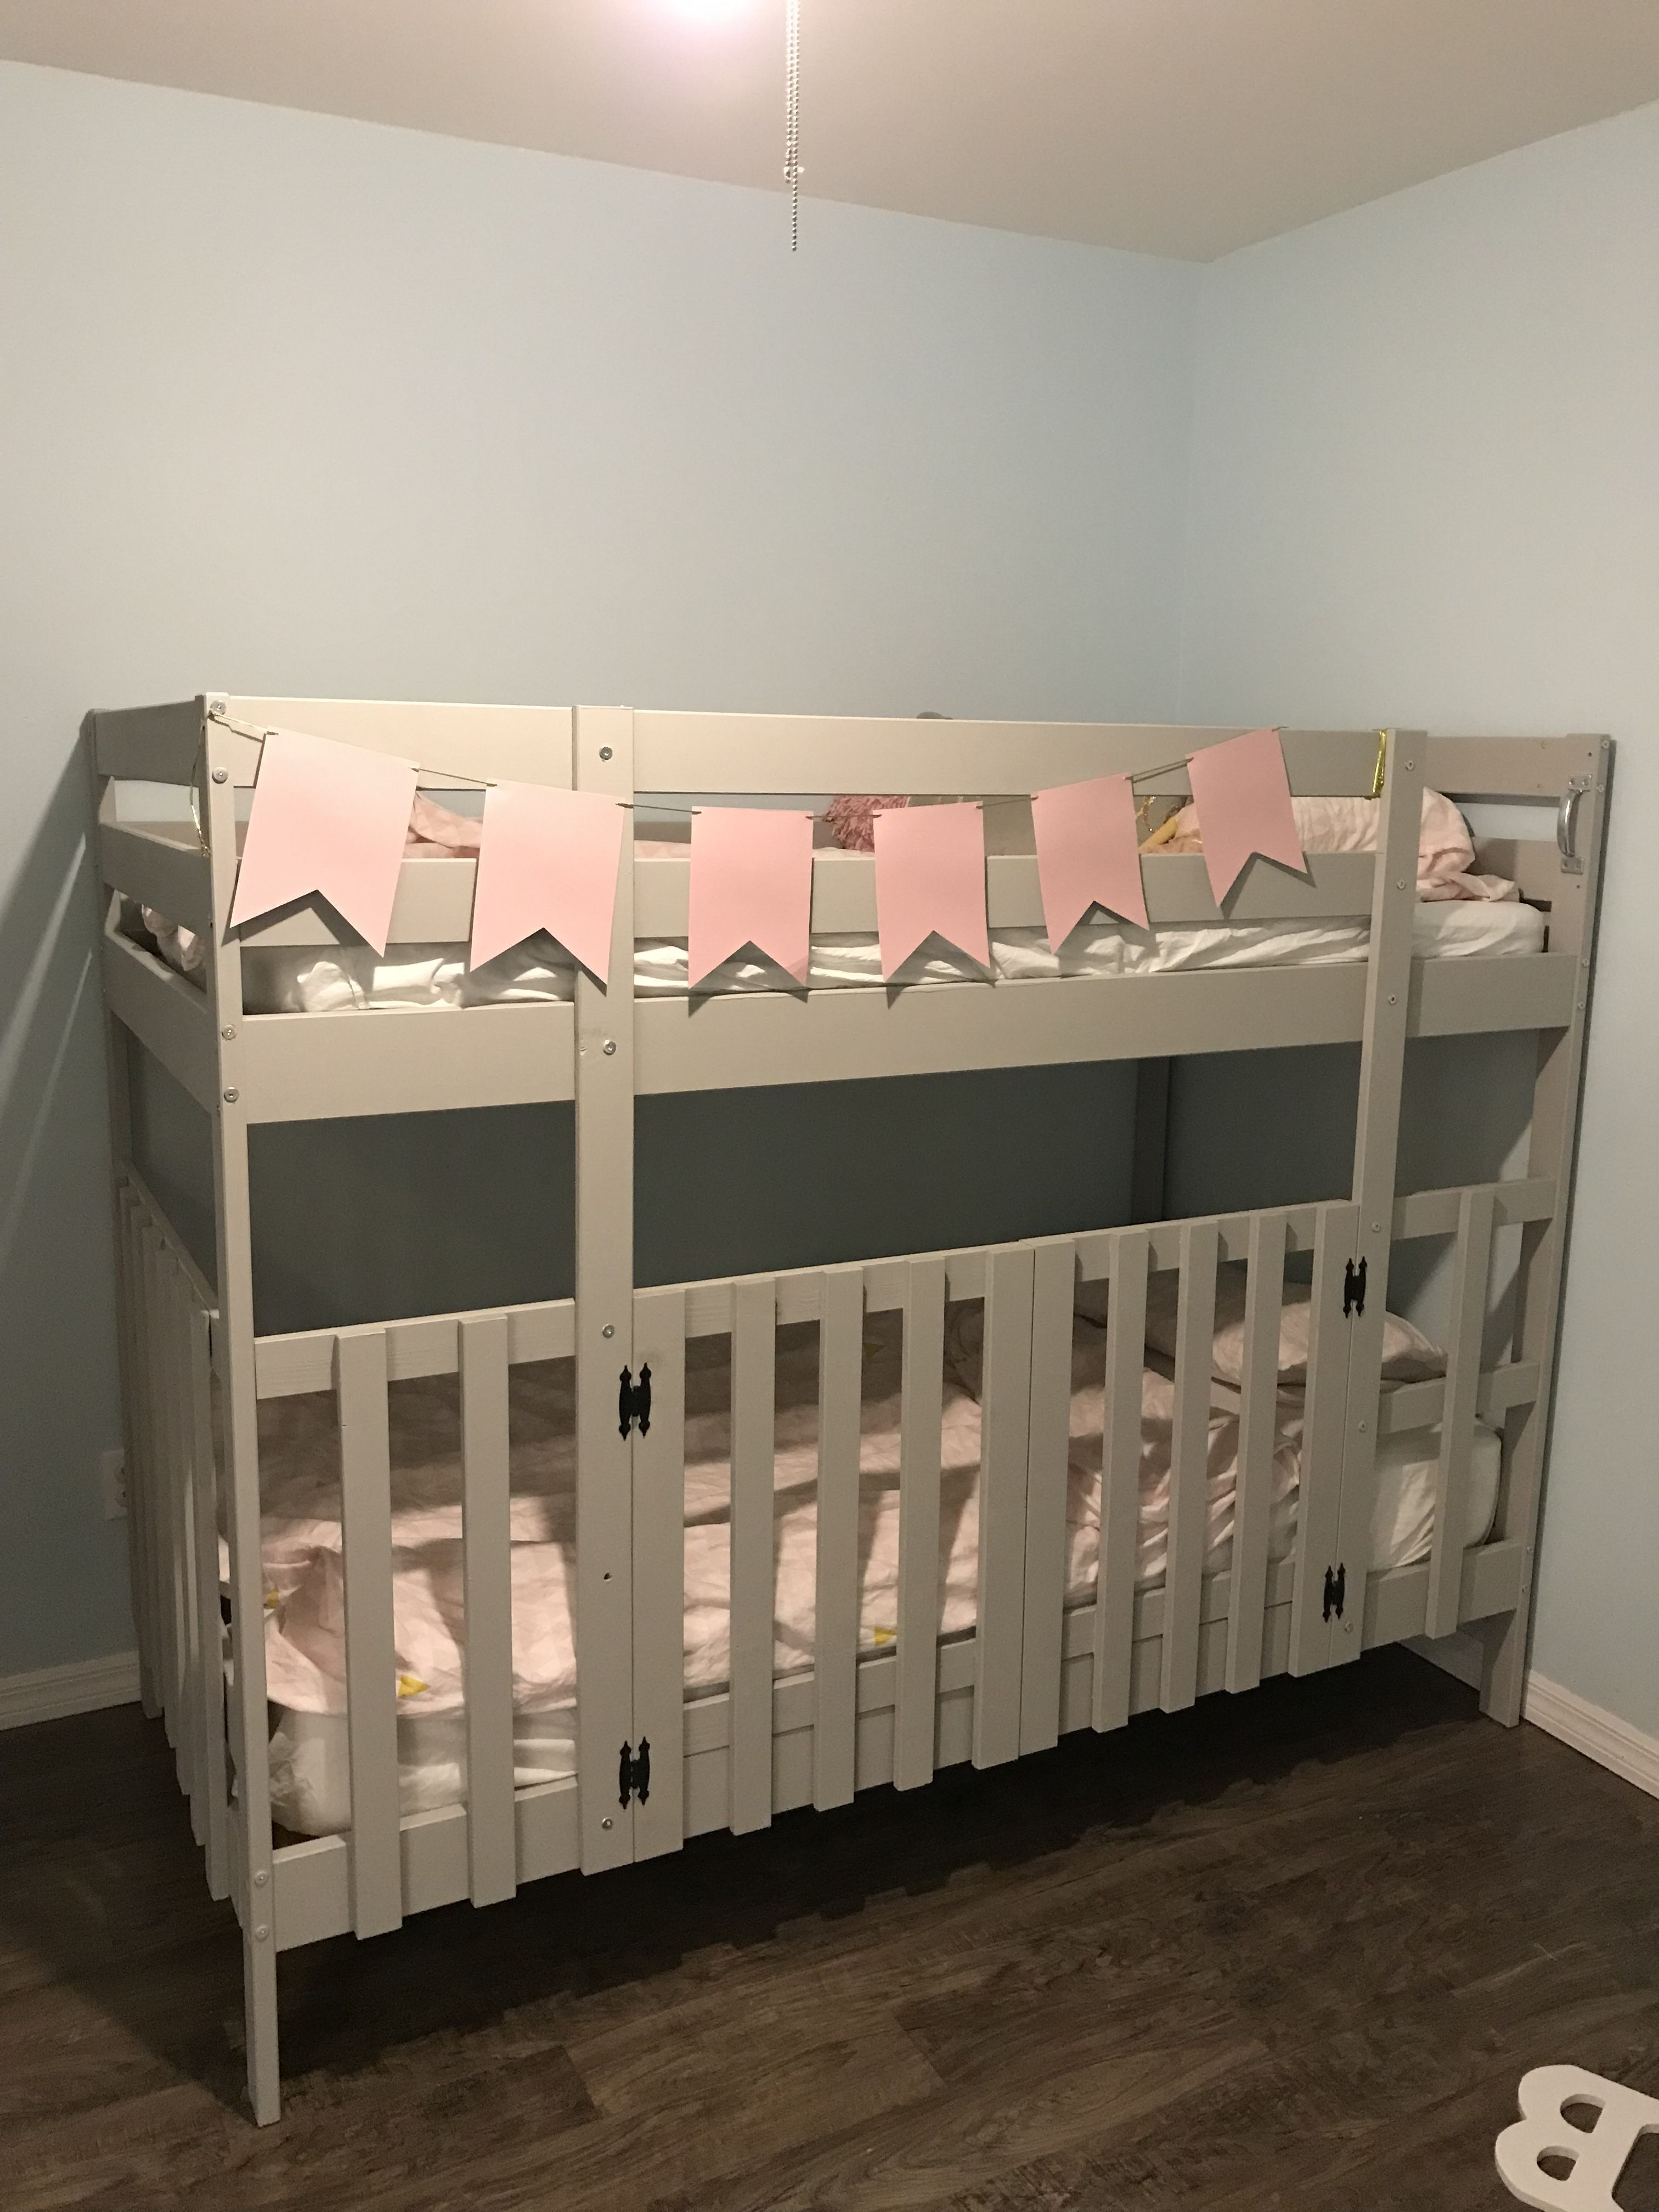 Bunk Bed Hack Created A Crib At The Bottom My Home Bunk Beds